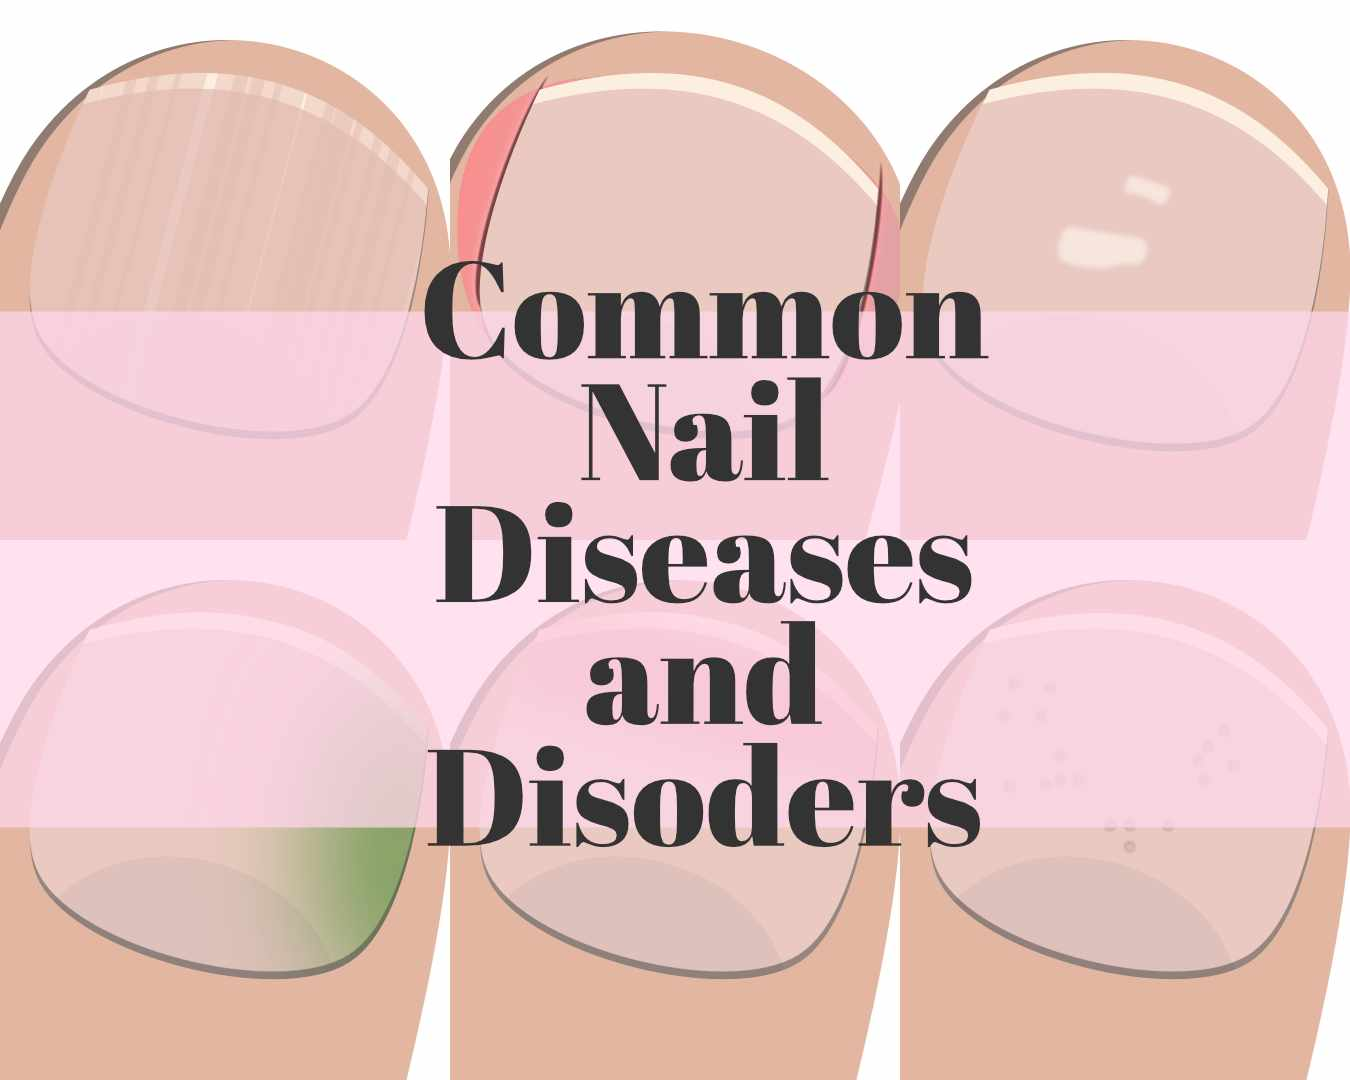 common nail diseases and disorders